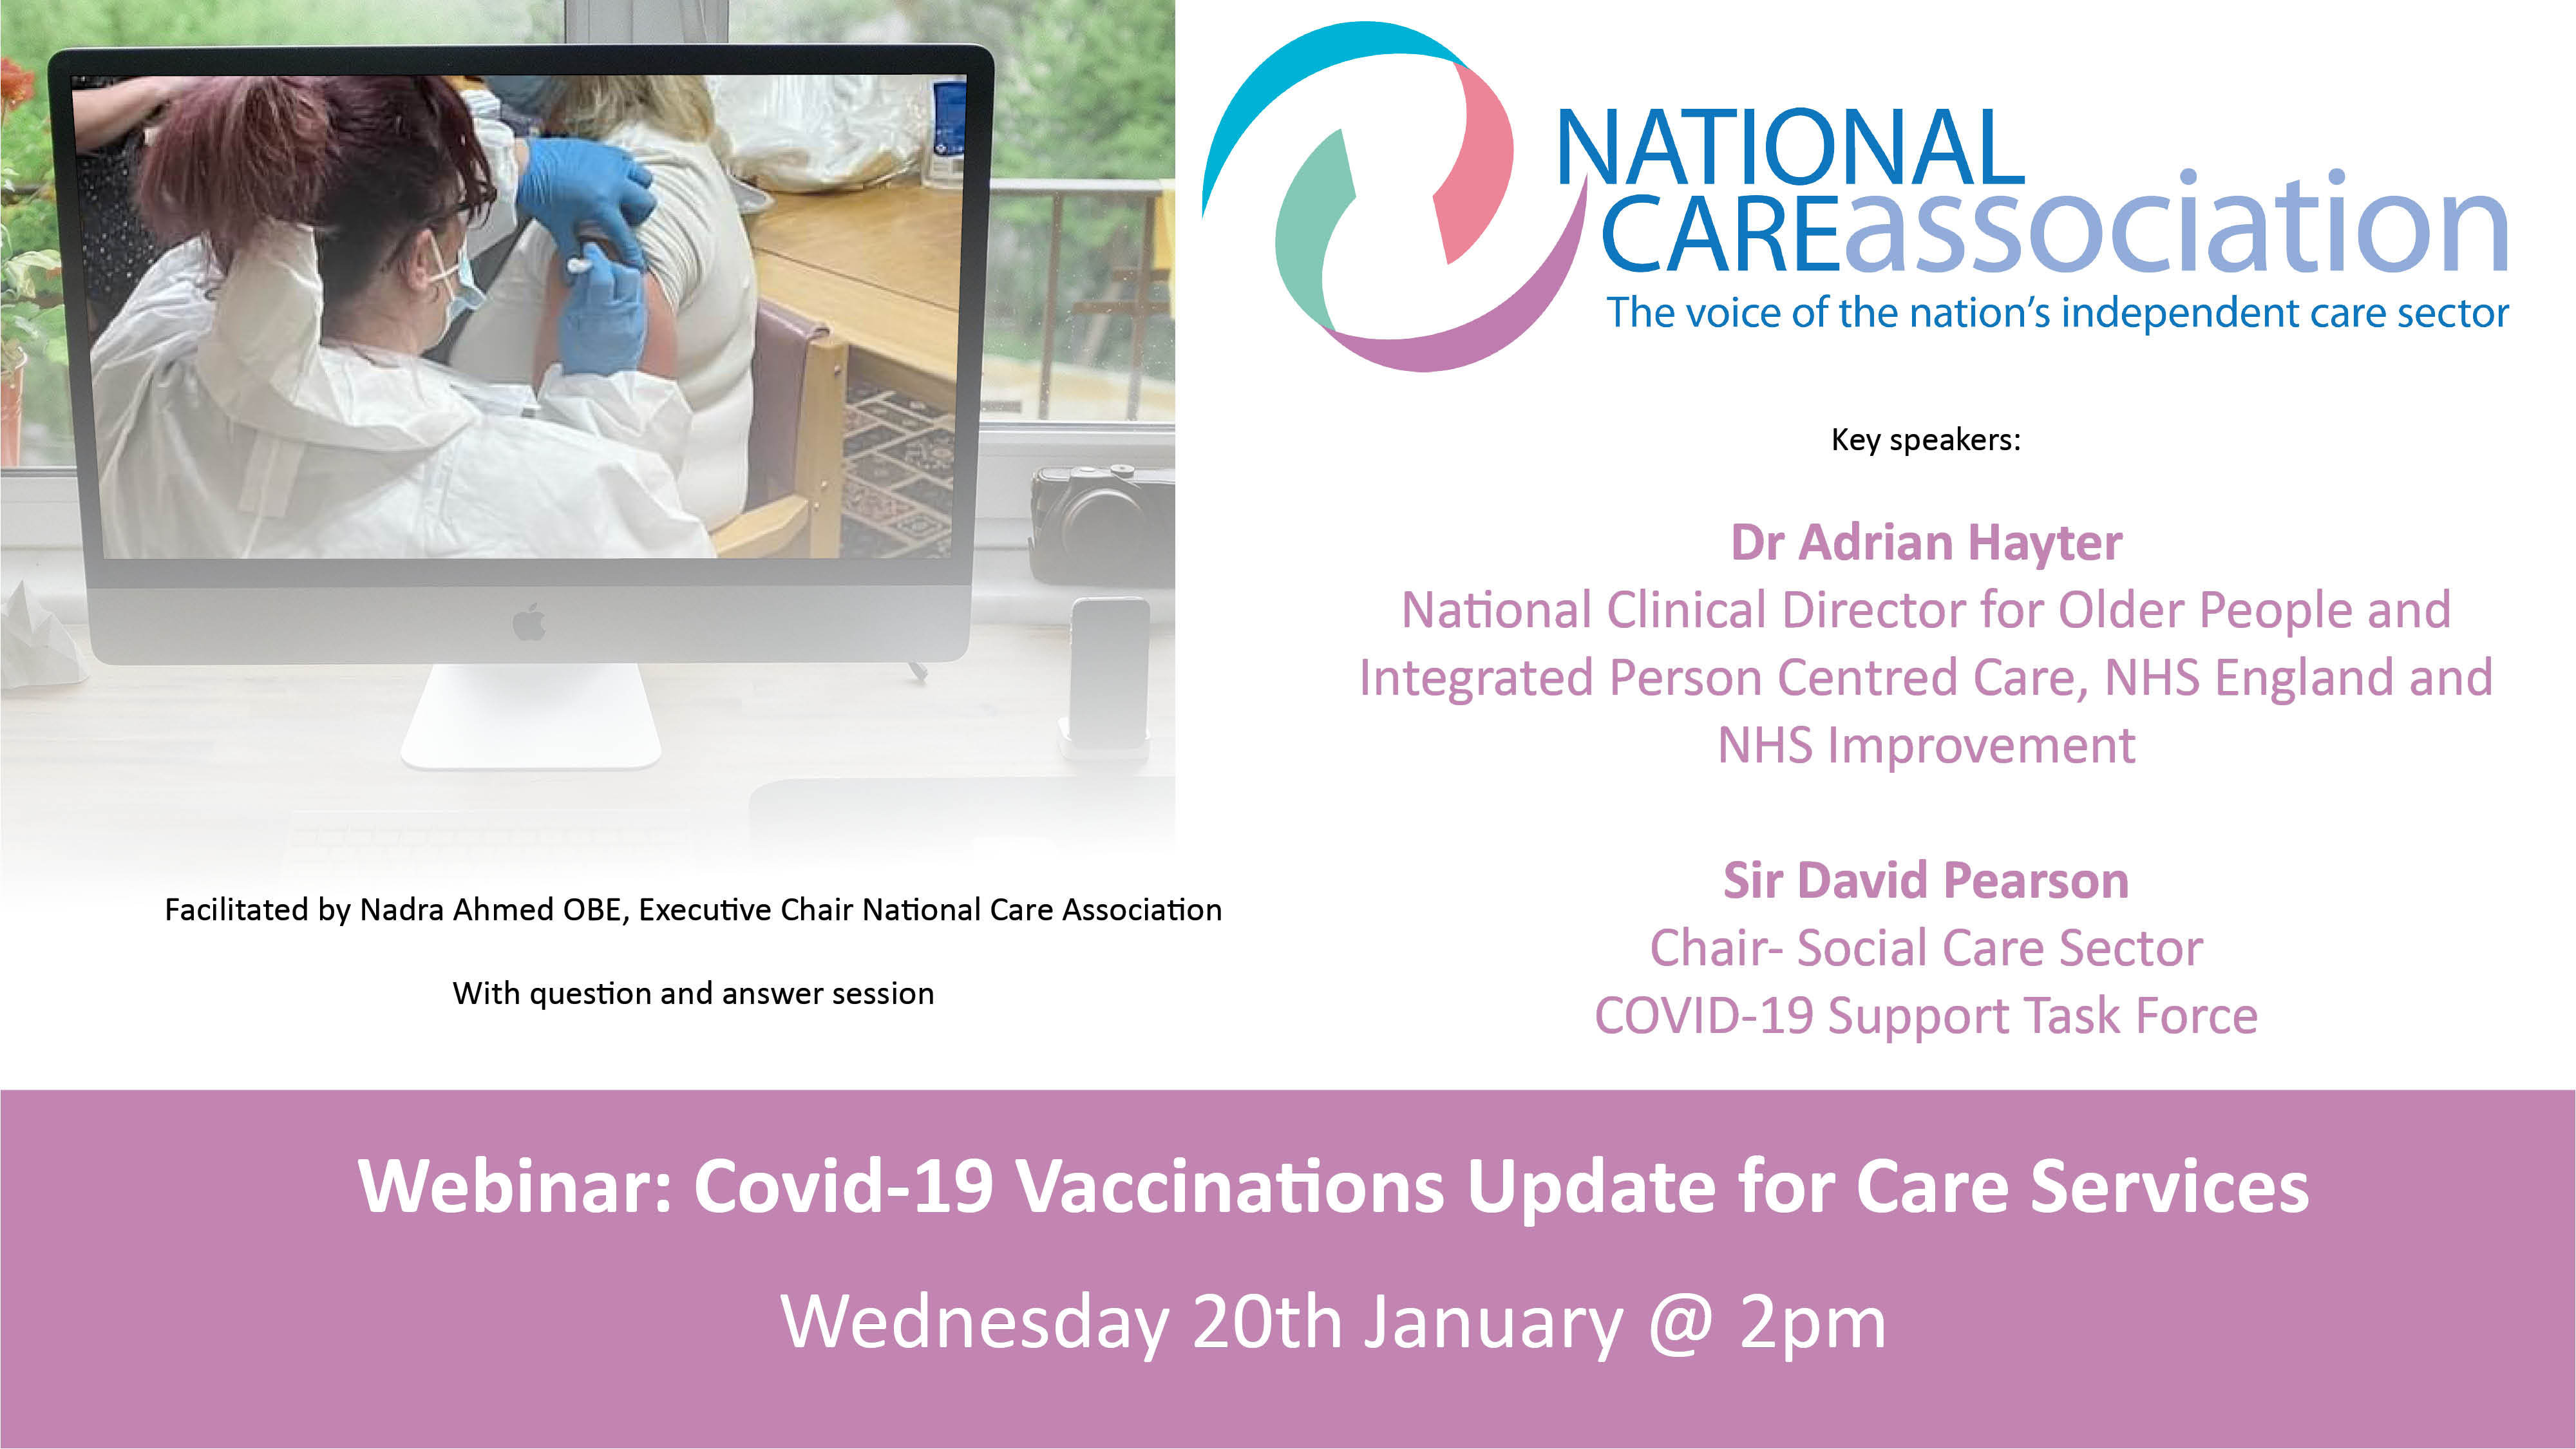 Covid-19 Vaccinations Update for Care Services